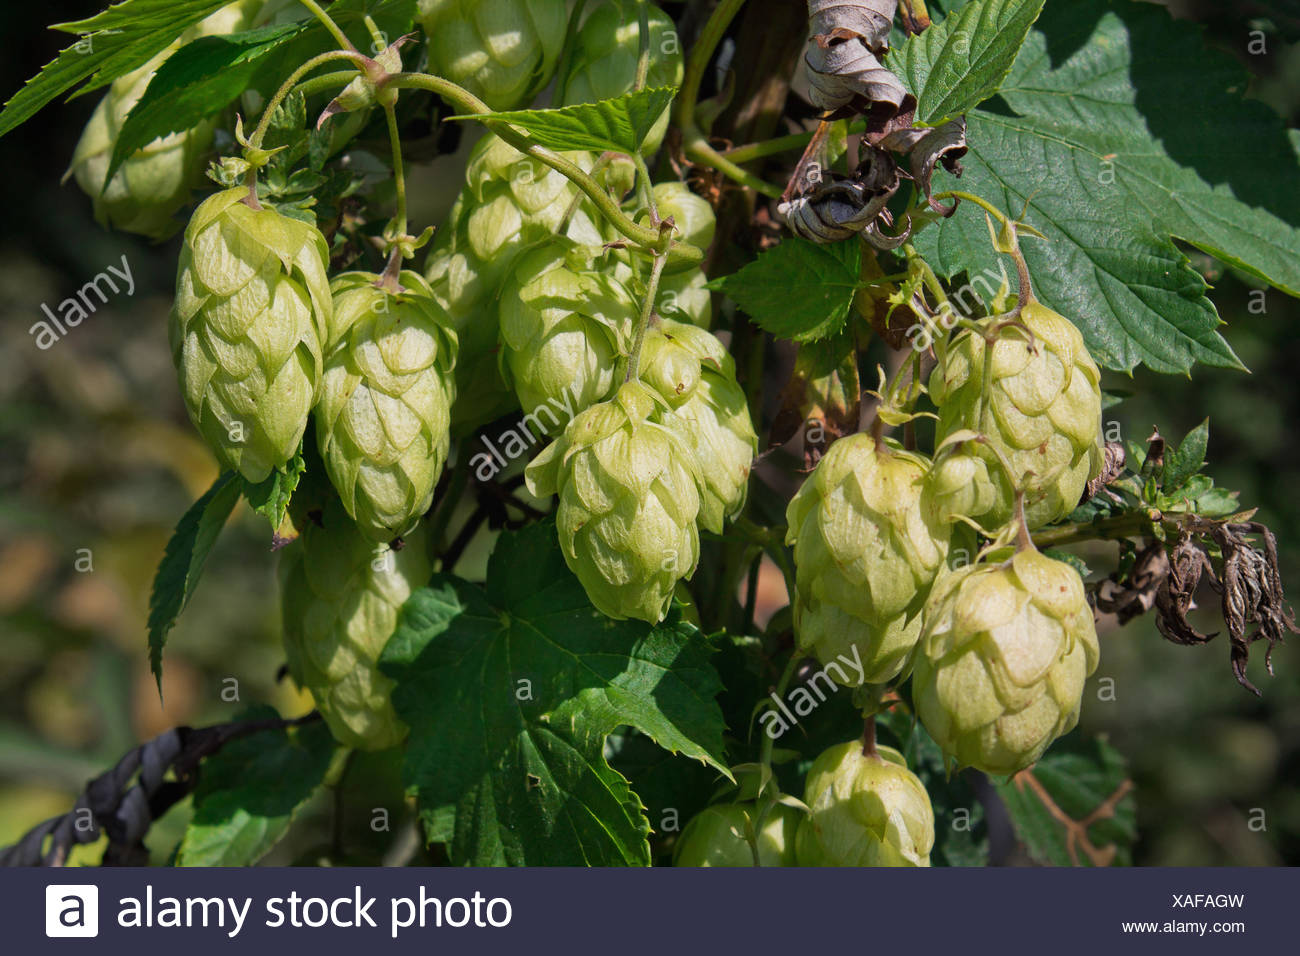 clusters of hop cones on a branch close up - Stock Image